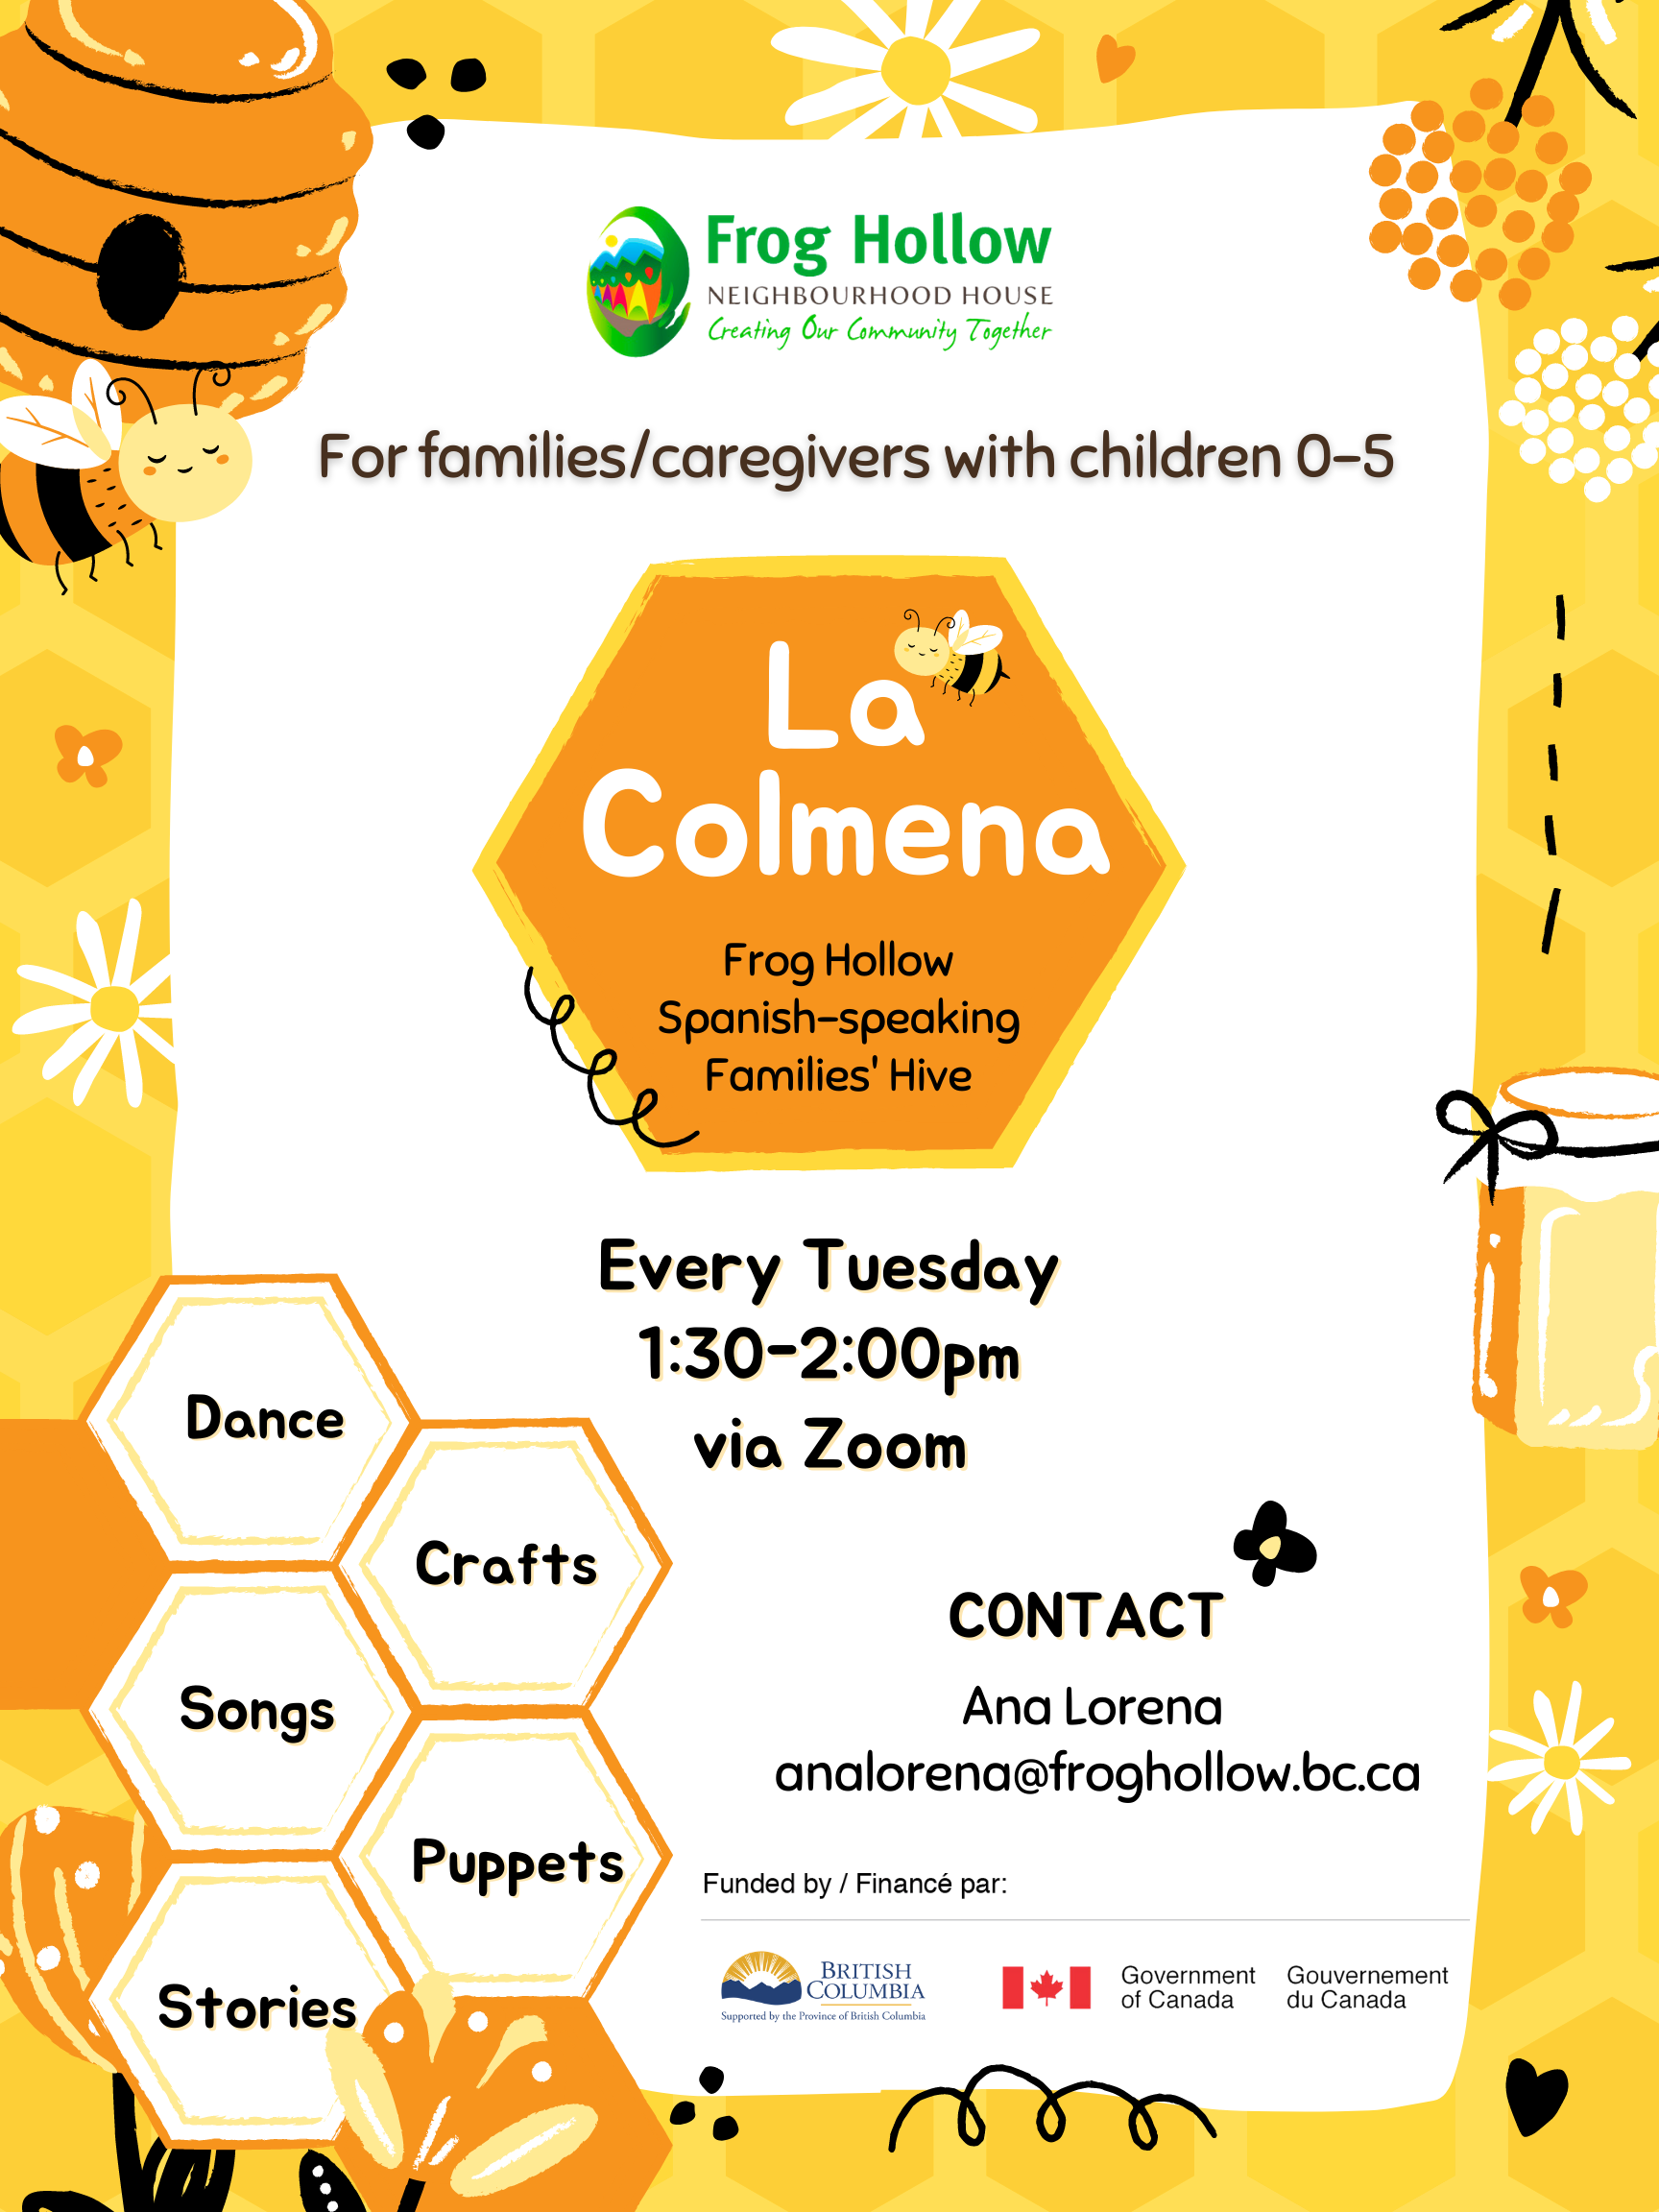 La-Colmena-Spanish-speaking-families-drop-in-program-gathering